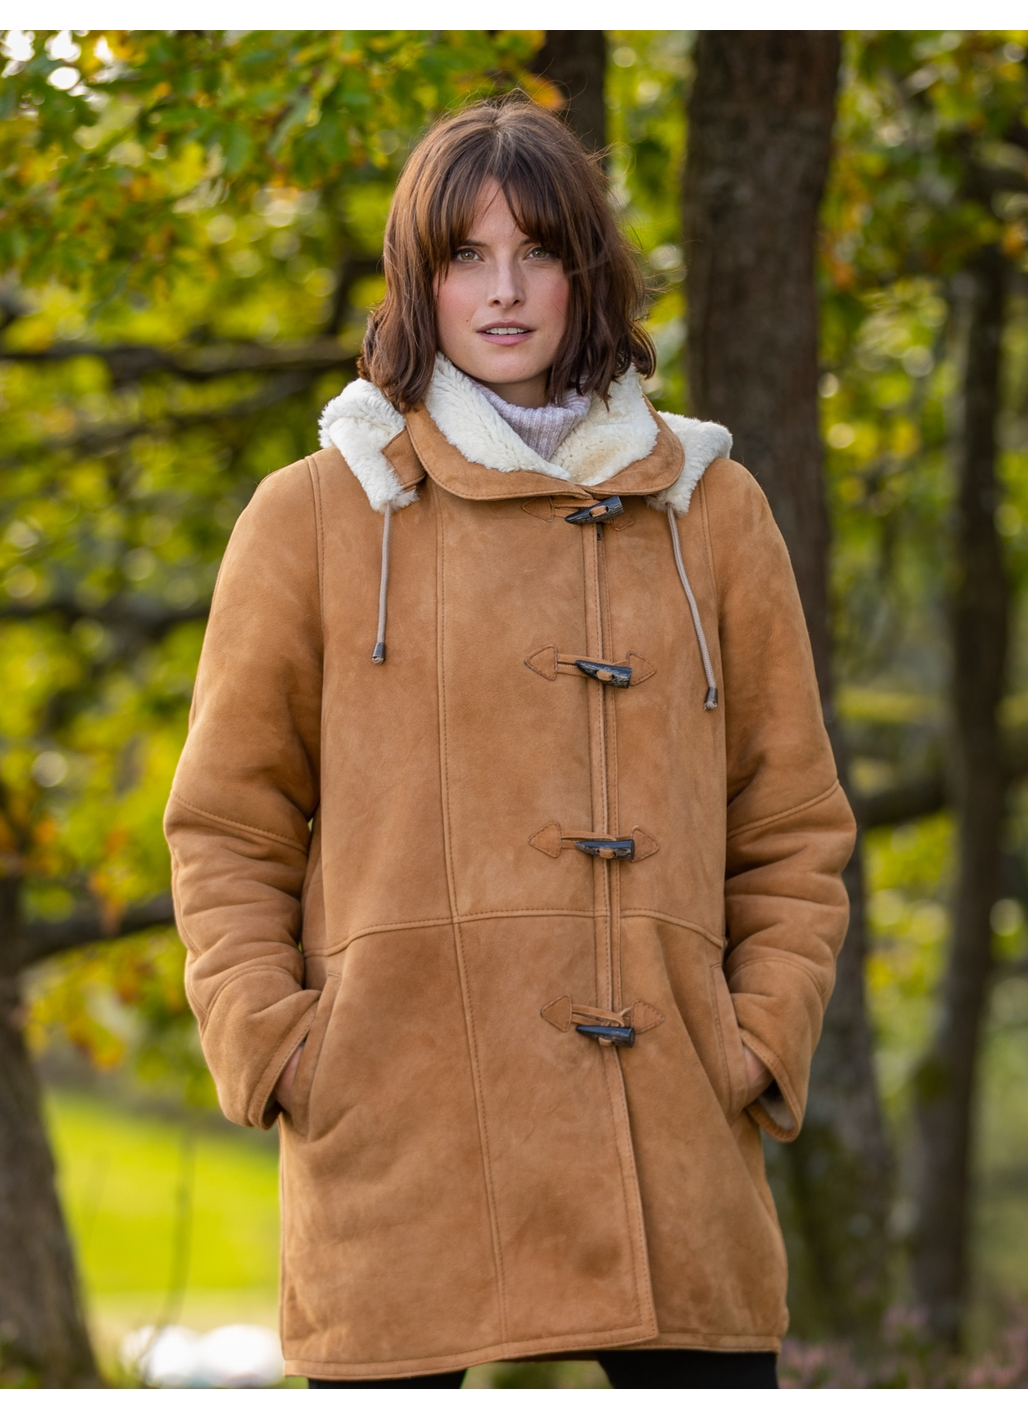 Parkgate Premium Sheepskin Duffle Coat in Tan